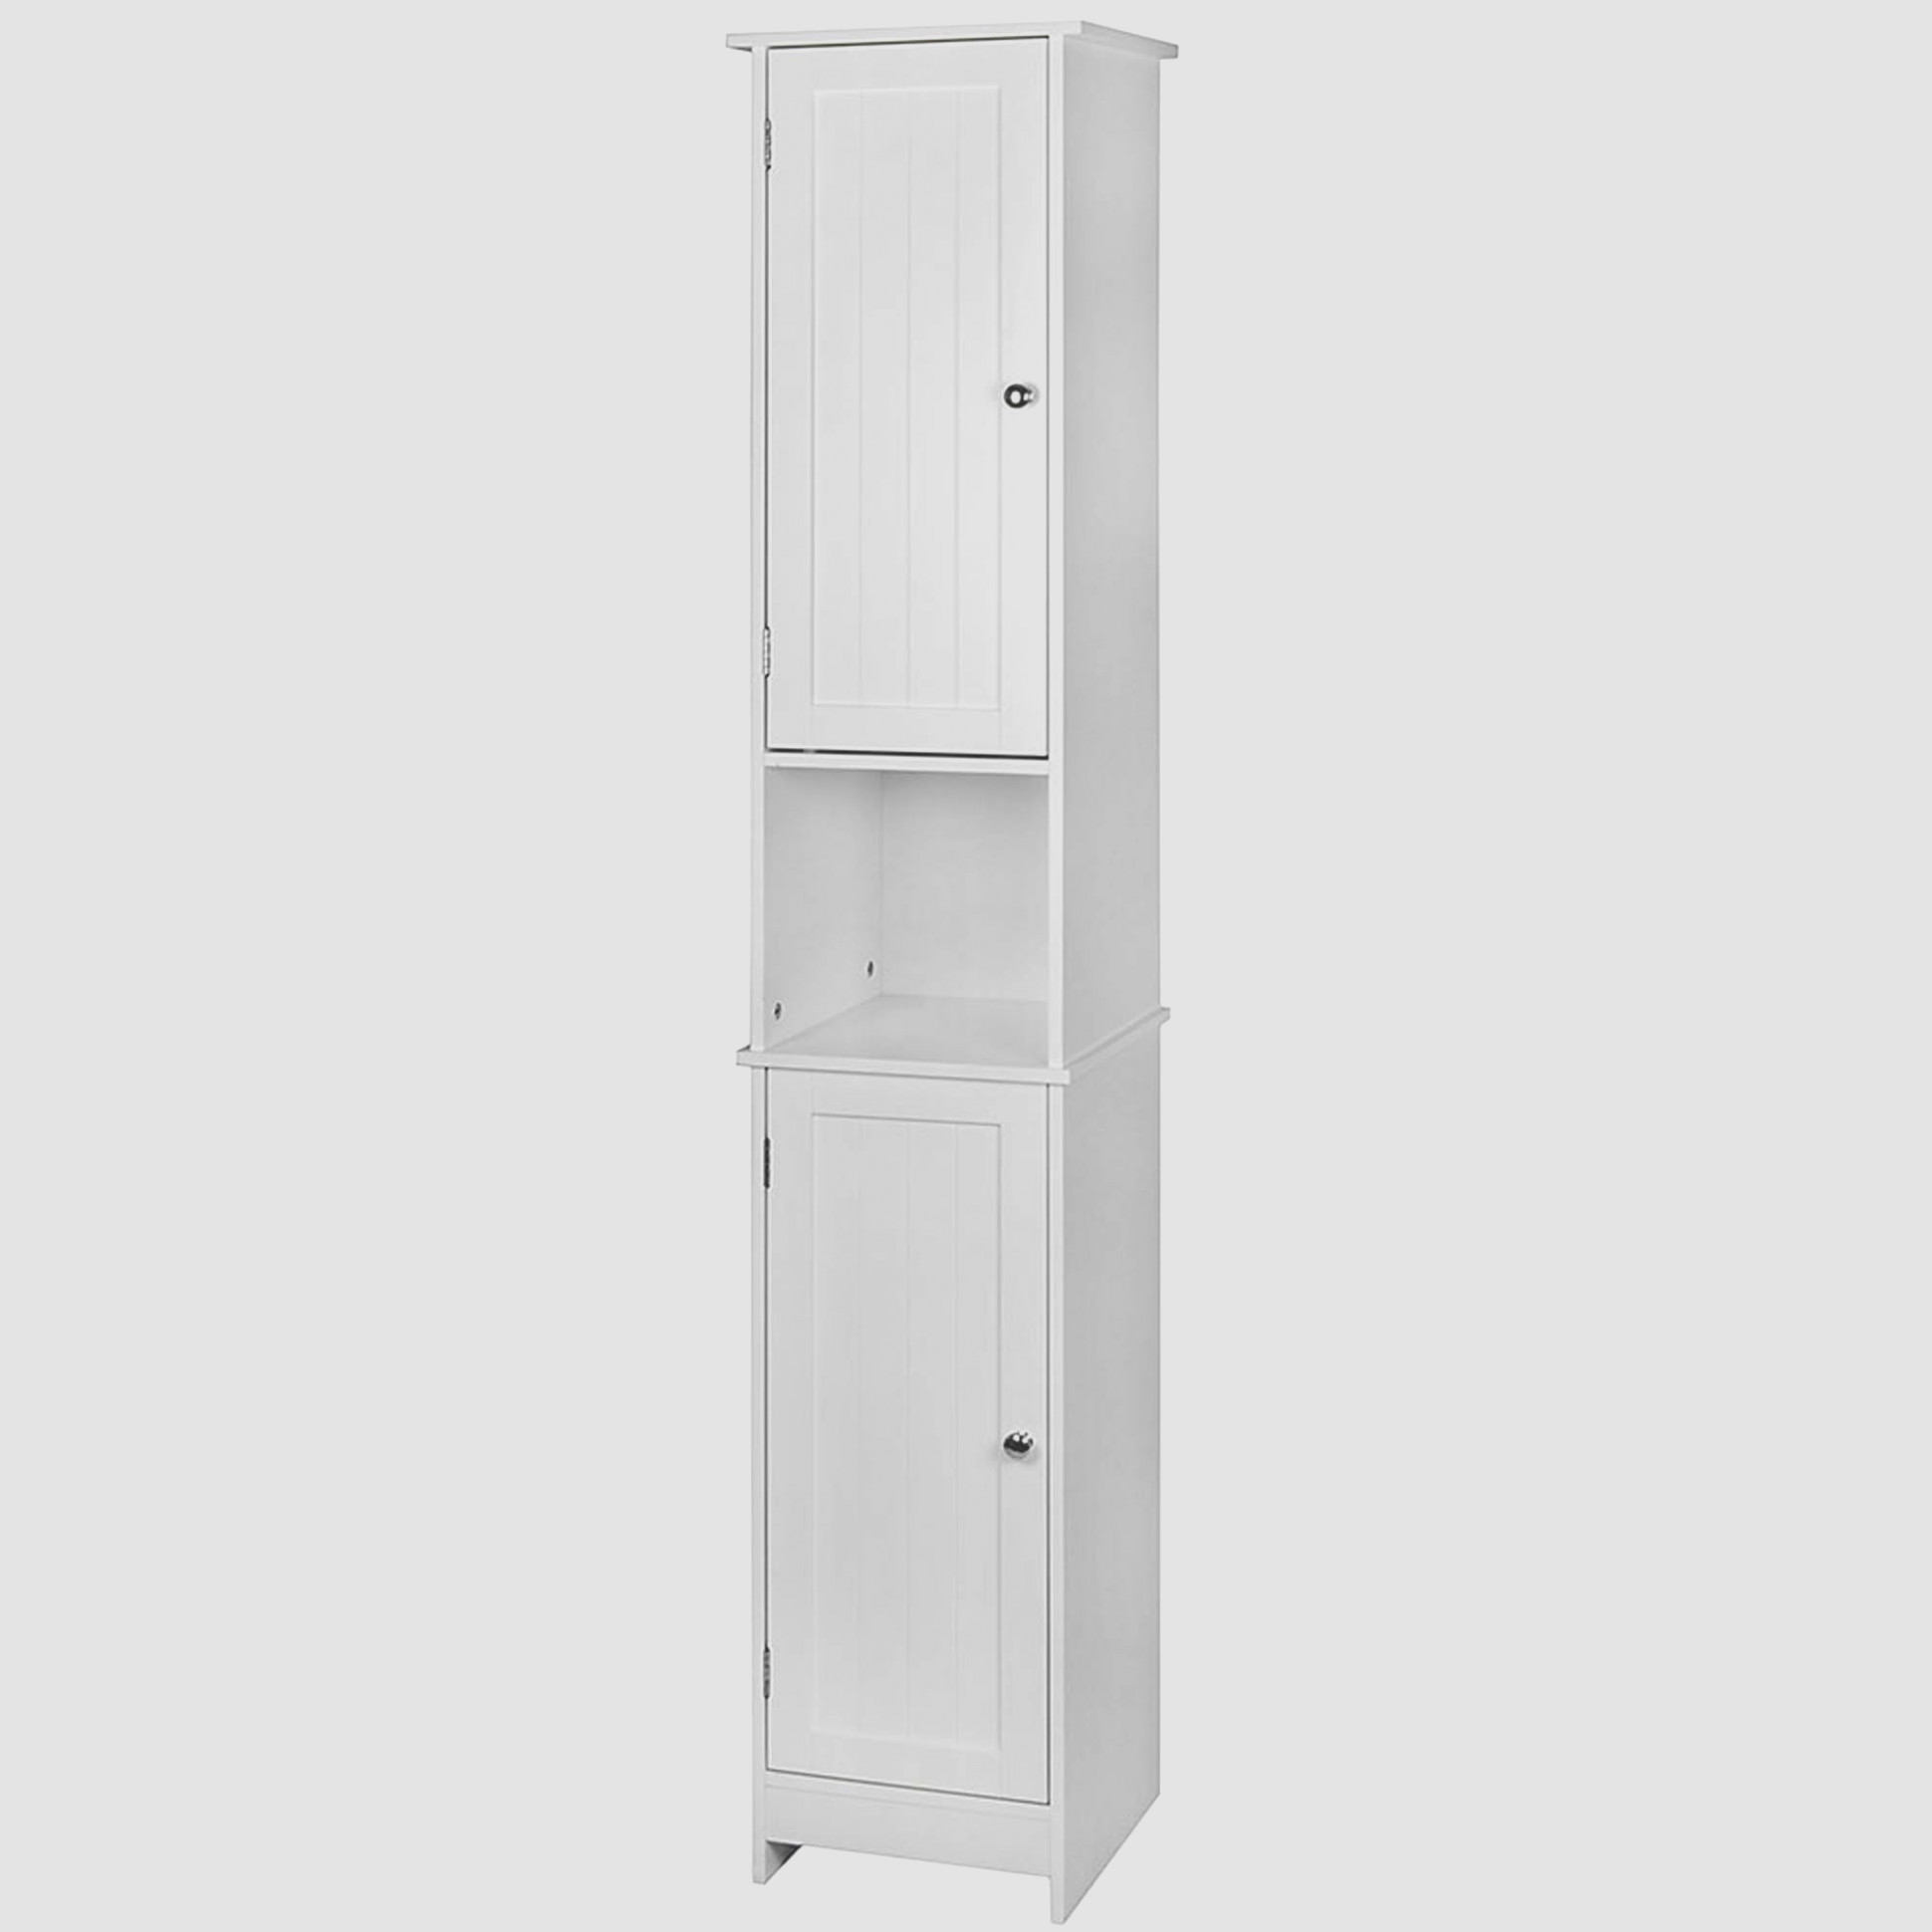 Tall Bathroom Cabinet With Doors